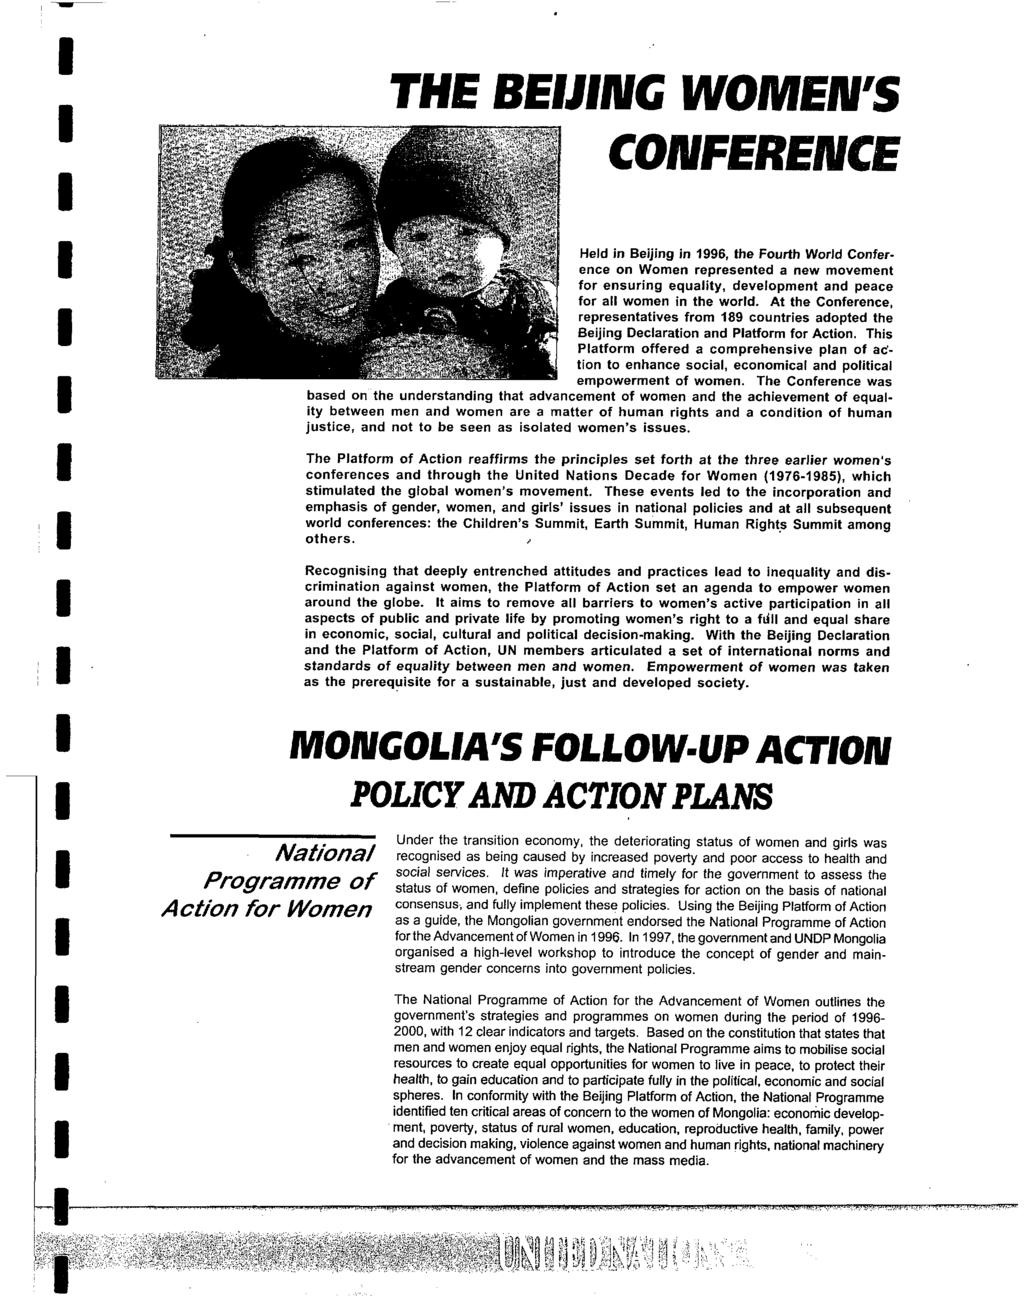 National Programme of Action for Women THE BEJNG WOMEN'S CONFERENCE Held in Beijing in 1996, the Fourth World Conference on Women represented a new movement for ensuring equality, development and